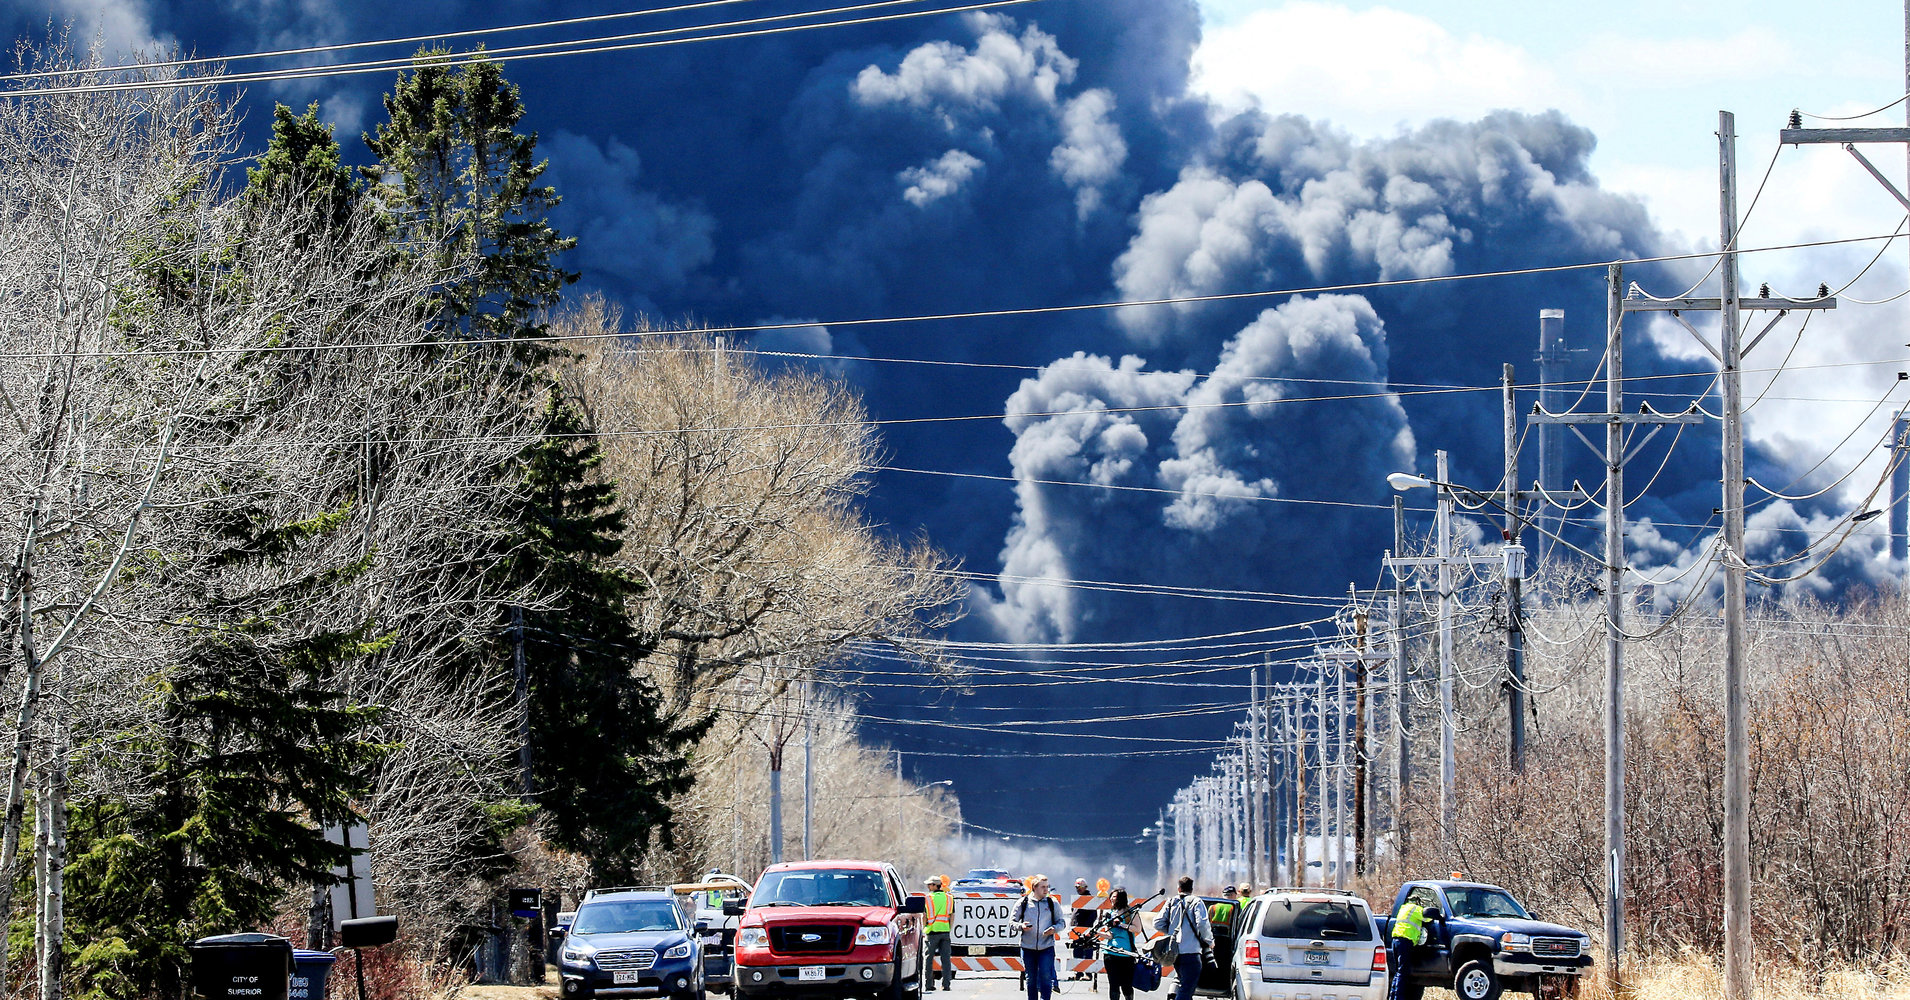 Investigators Search For Cause Of Wisconsin Oil Refinery Explosion